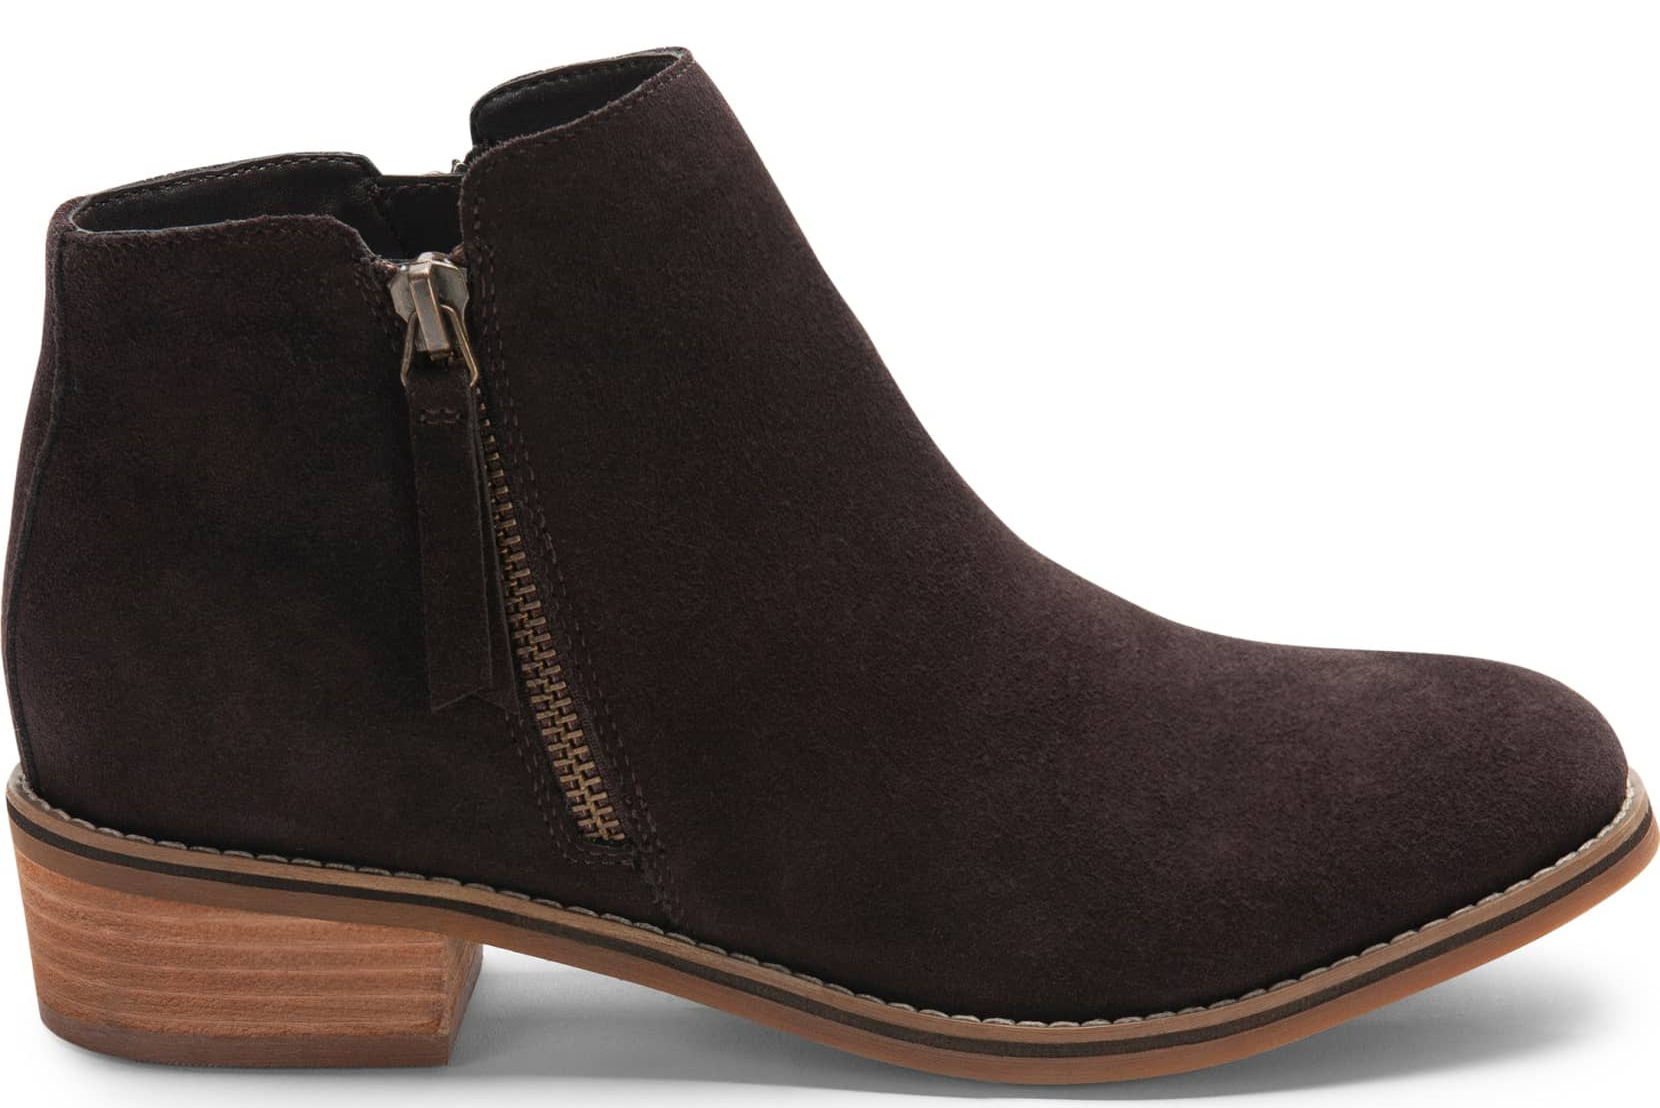 5b8a2026628 Our Favorite Booties for the Holidays Are on Sale at Nordstrom